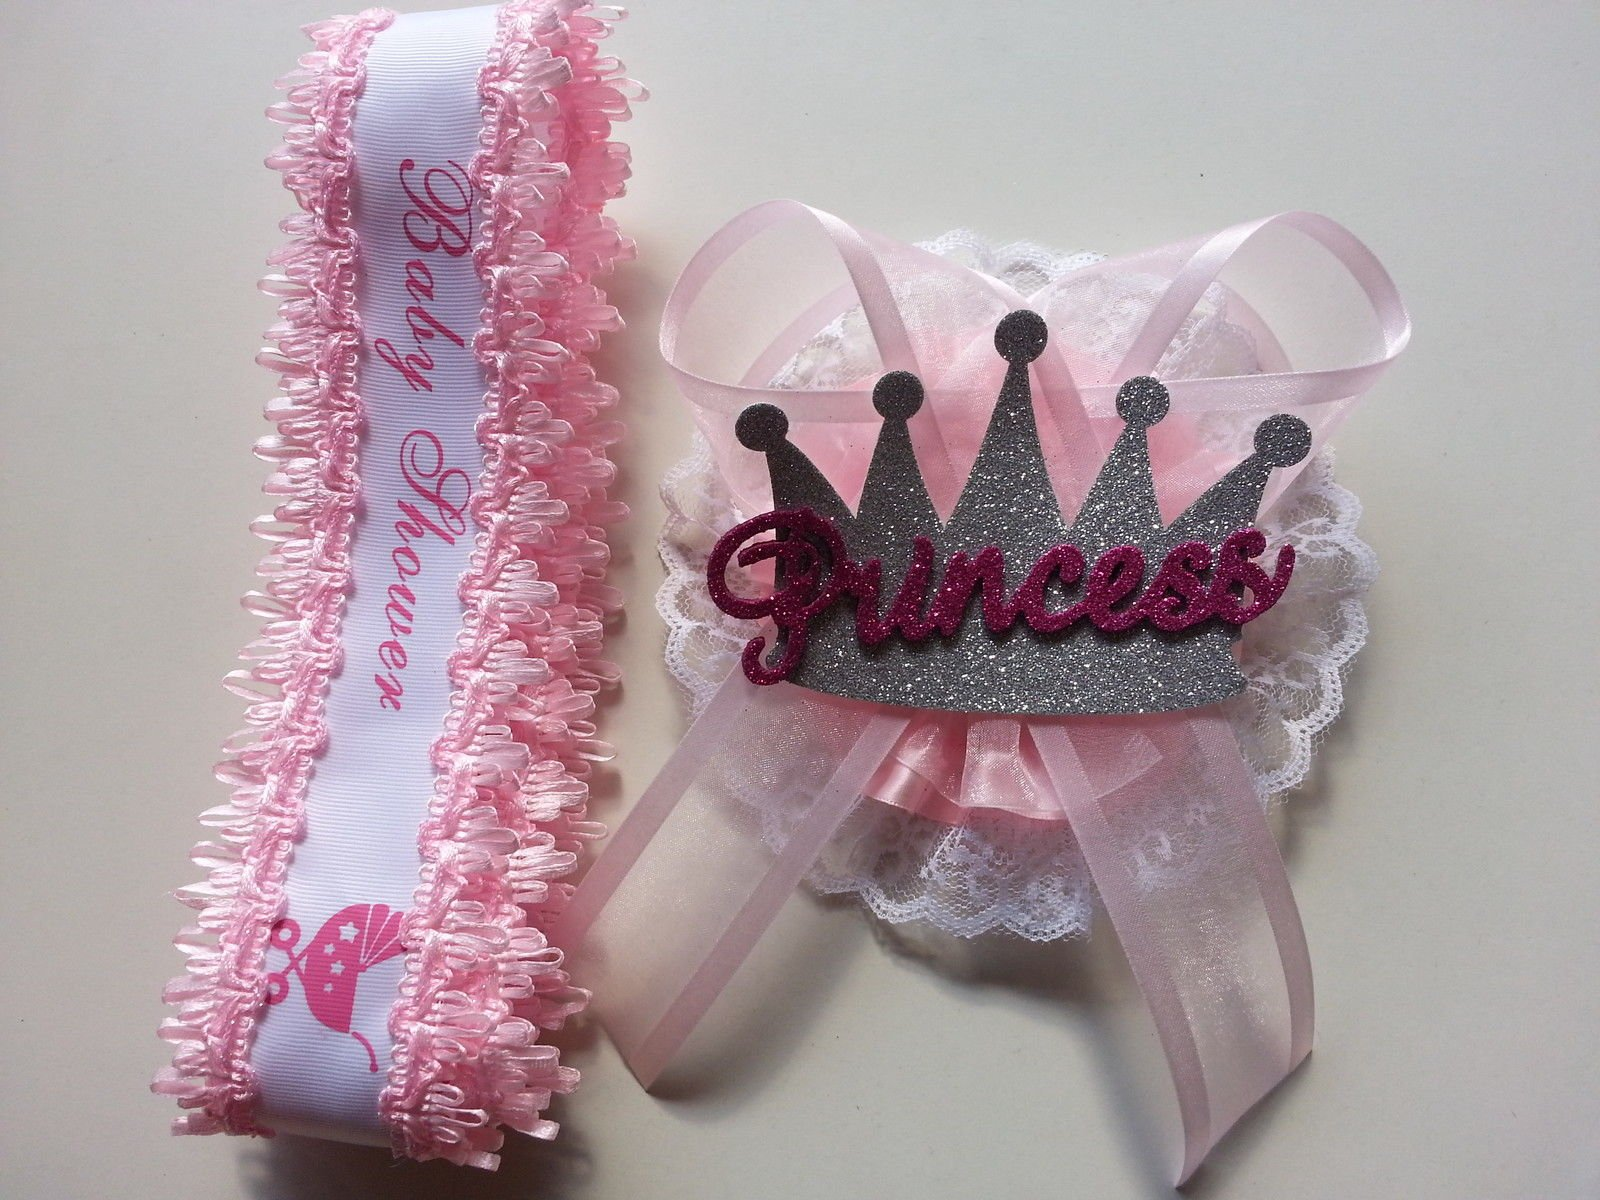 Baby Shower Mom To Be It's a Girl Sash with Princess Crown Pink Ribbon Corsage by PRODUCT 789 (Image #2)